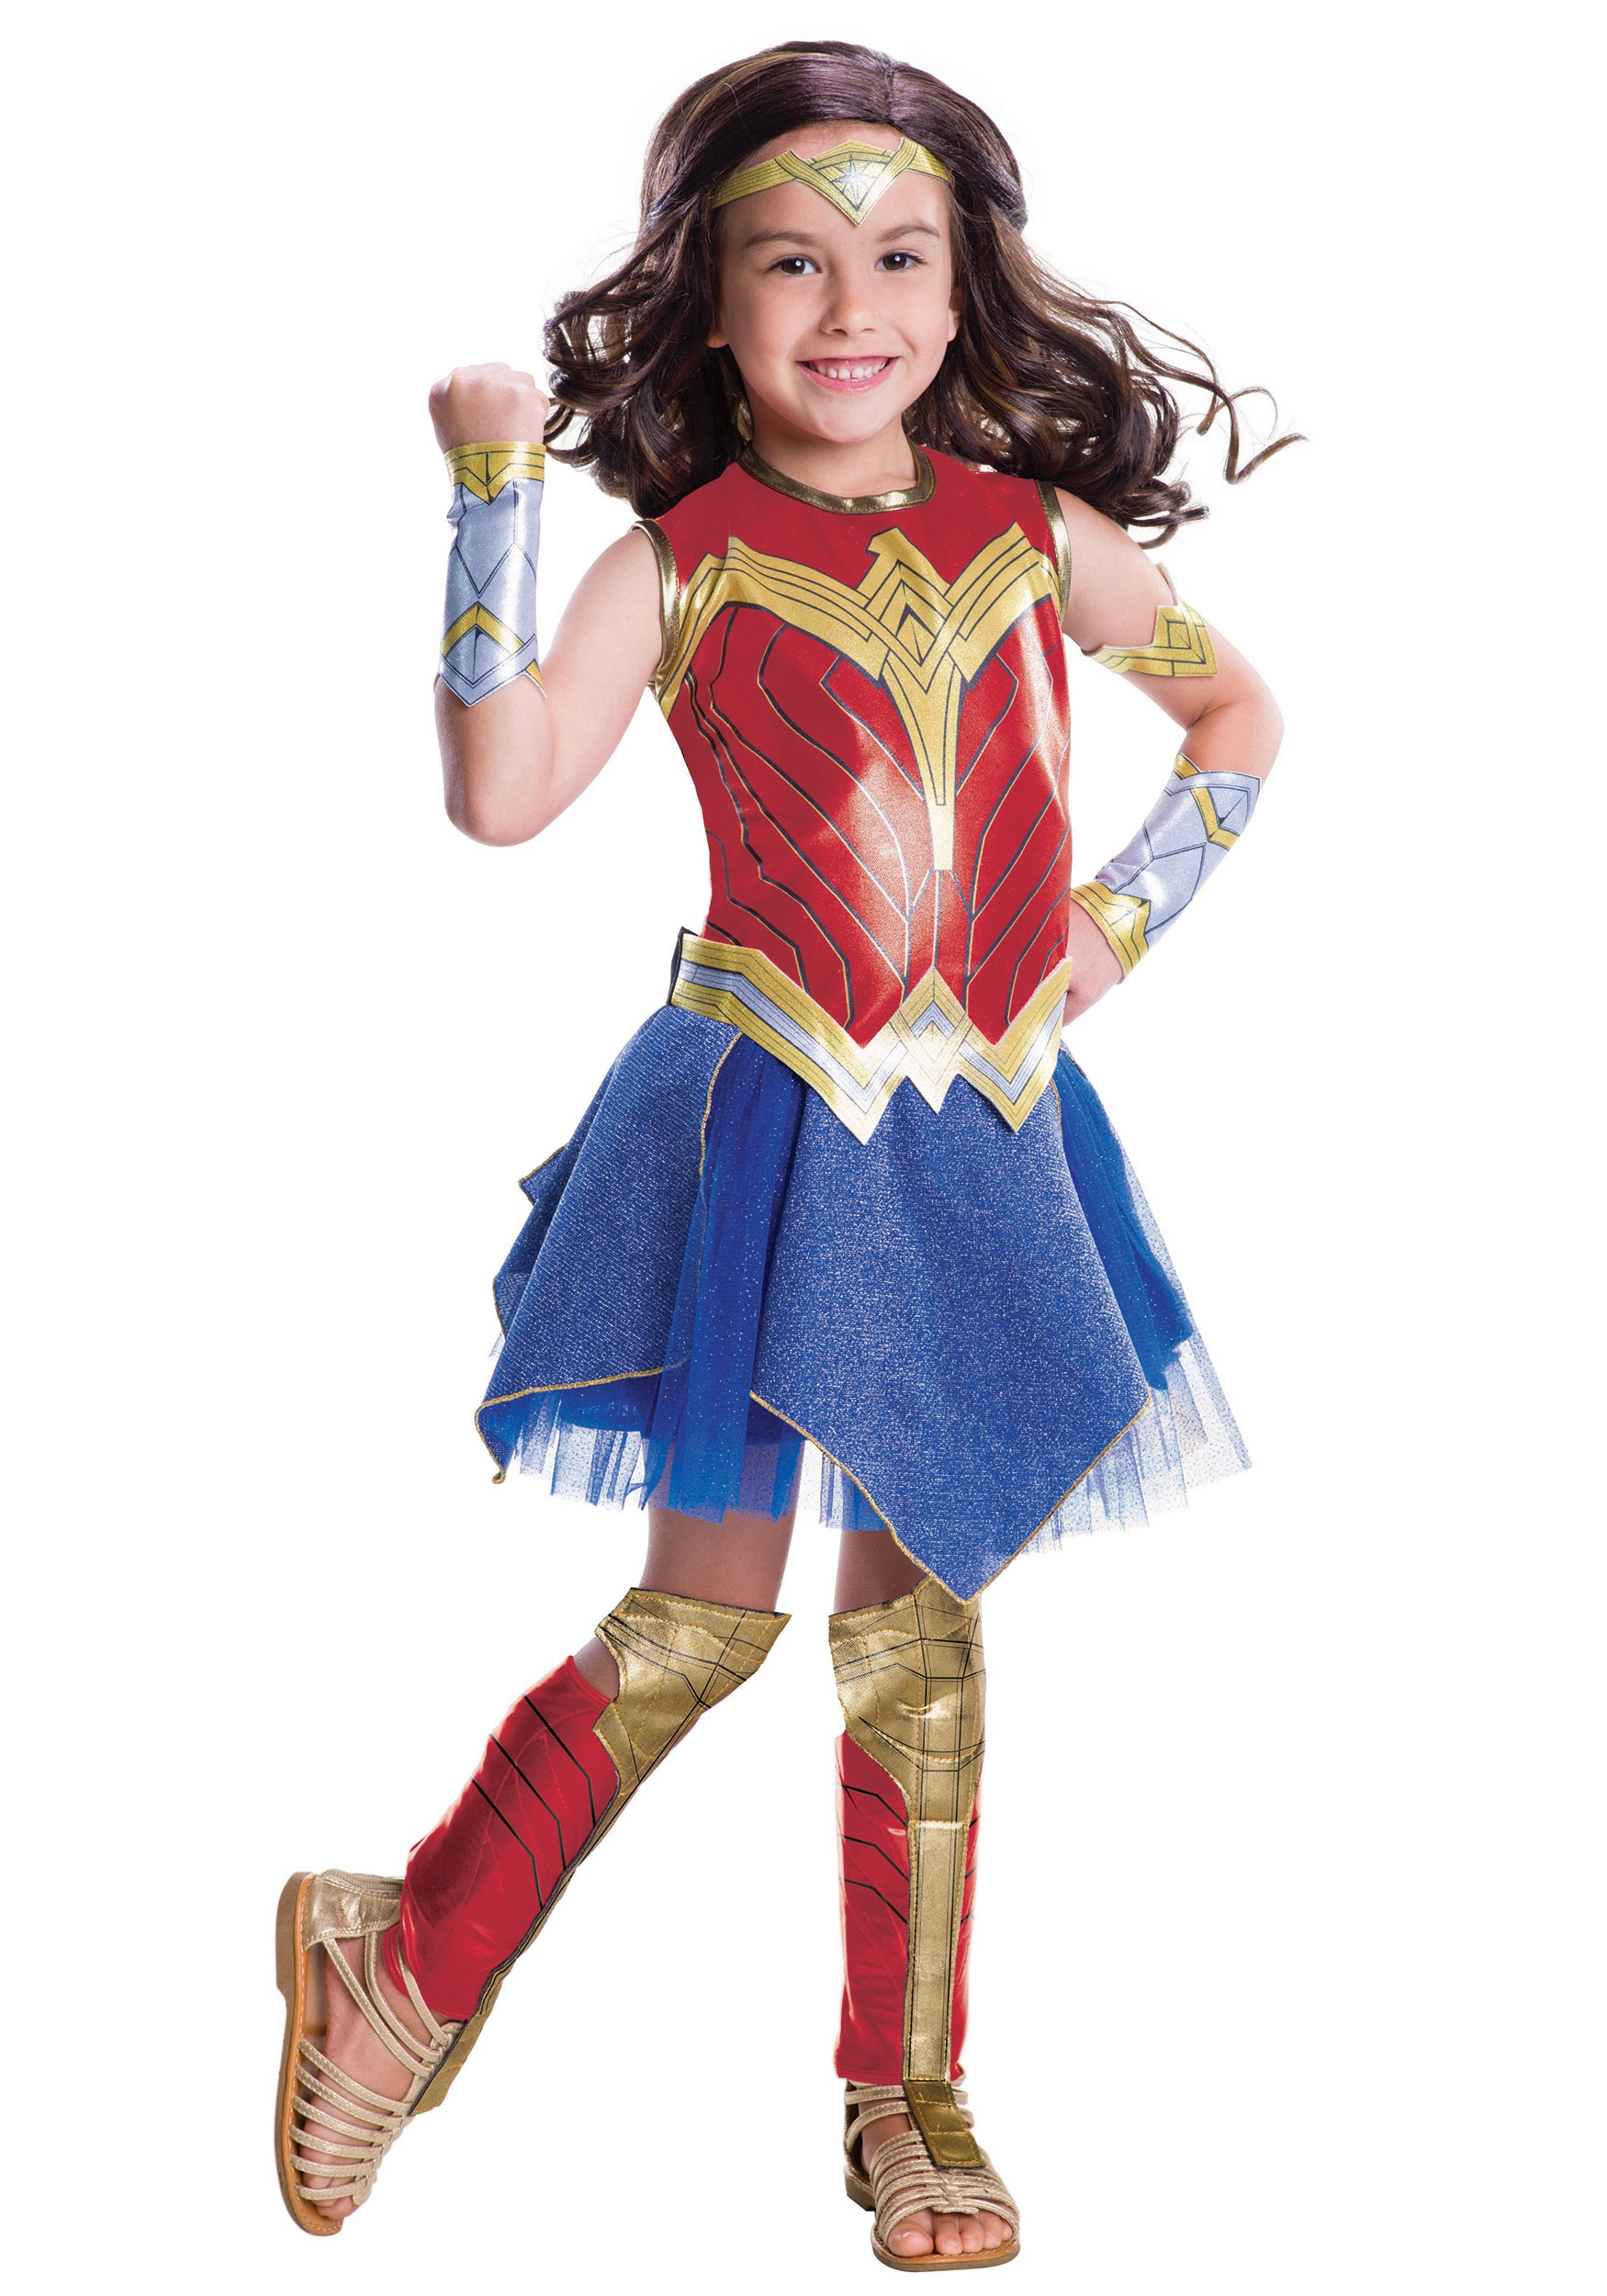 justice league deluxe wonder woman costume for girls. Black Bedroom Furniture Sets. Home Design Ideas